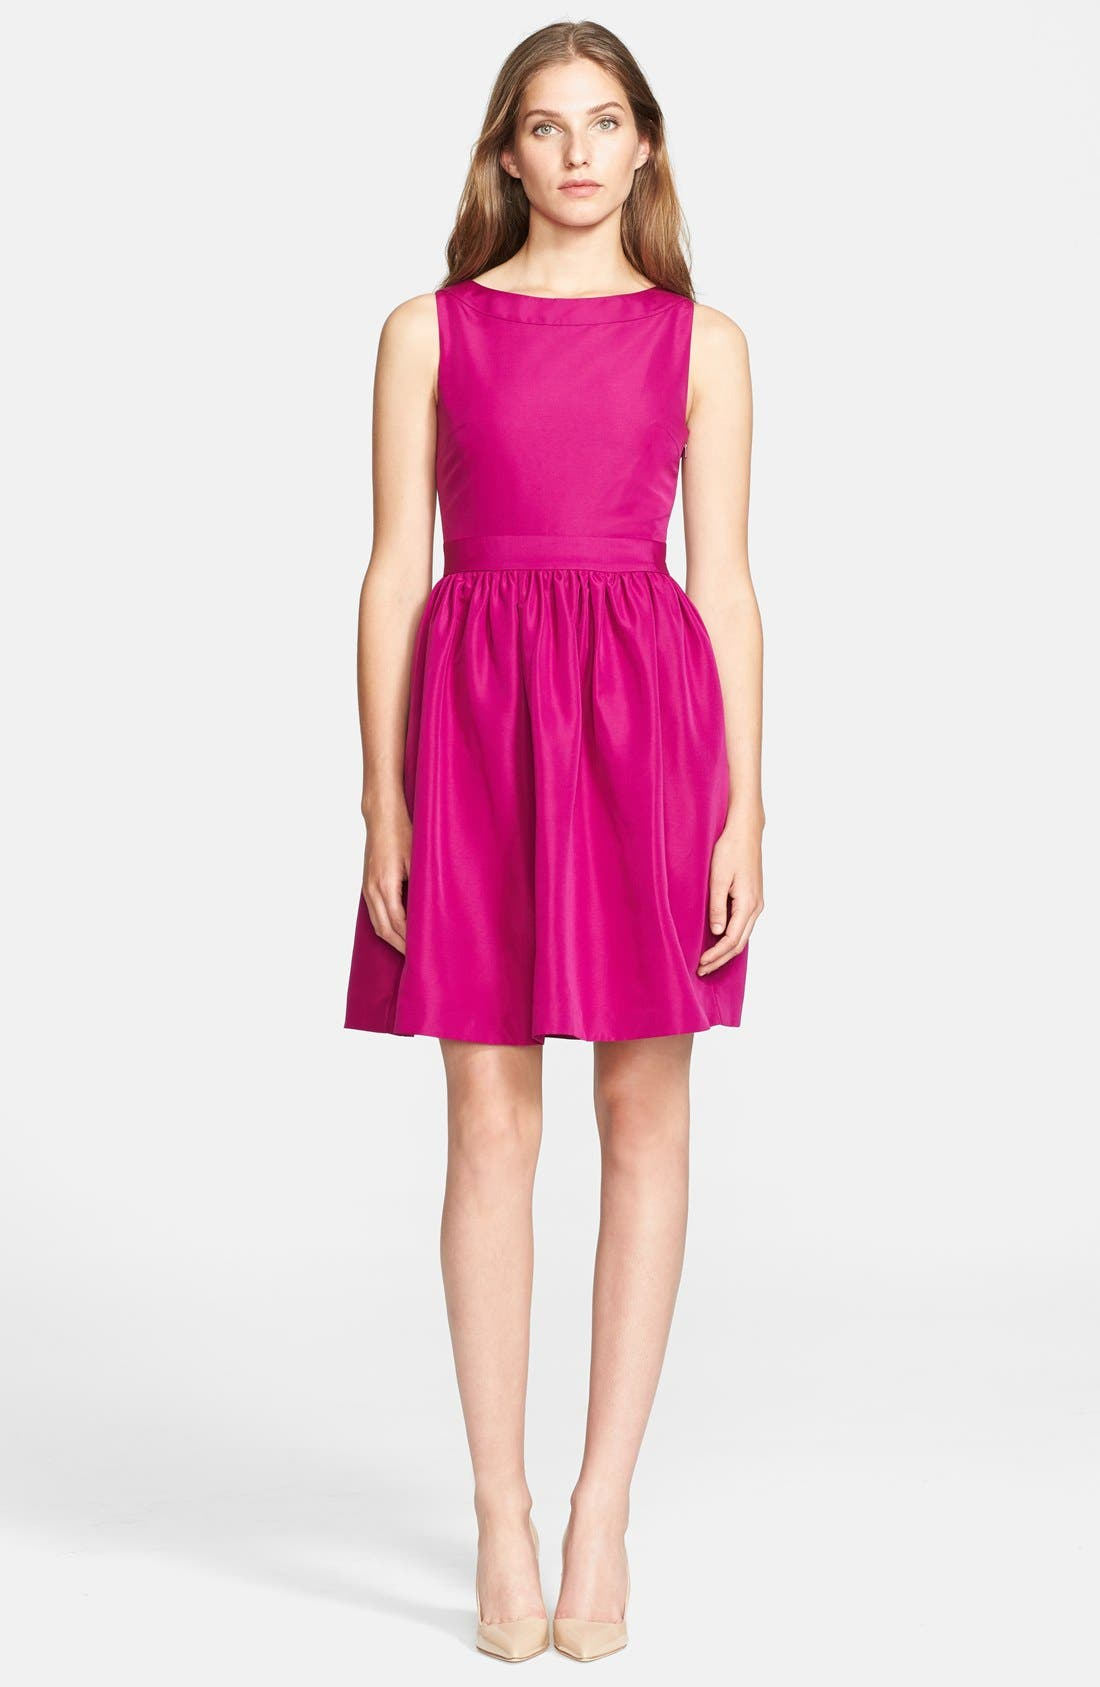 Main Image - Ted Baker London 'Juletee' Stretch Woven Fit & Flare Dress